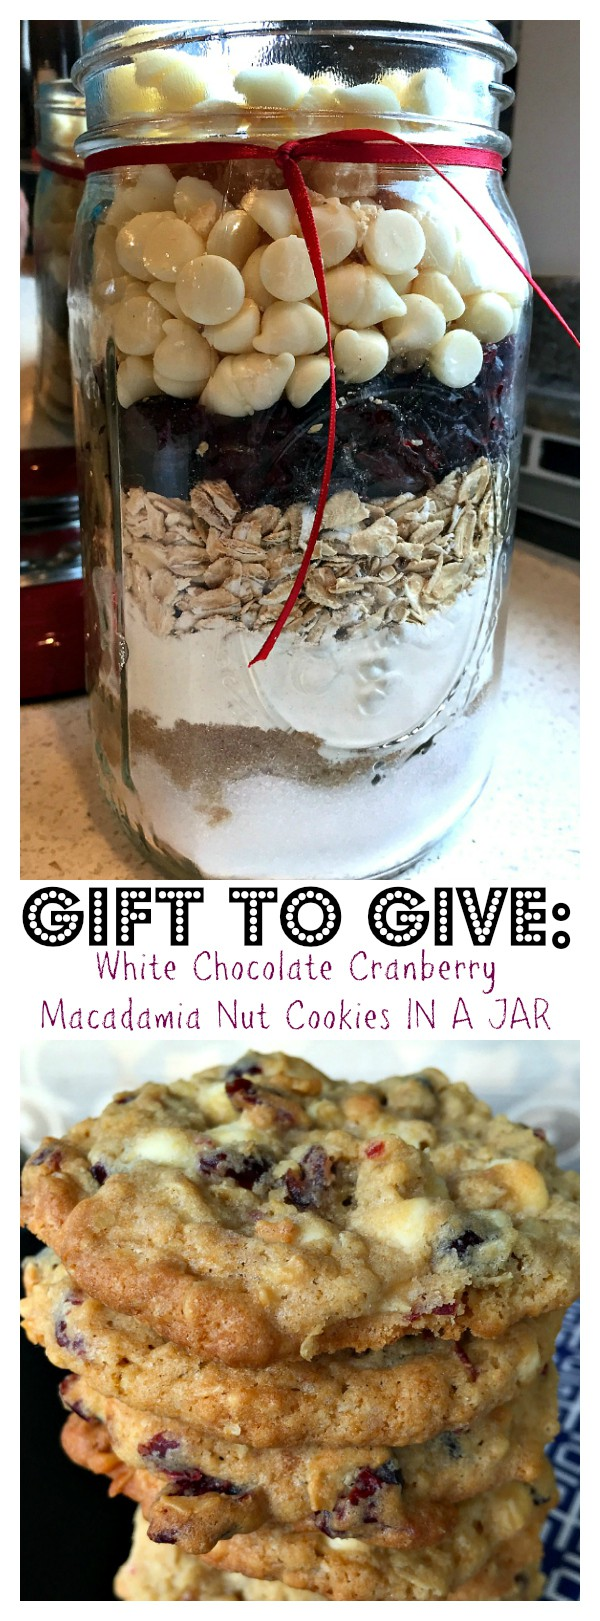 GIFT TO GIVE: White Chocolate Cranberry Macadamia Nut Cookies in a Jar Recipe